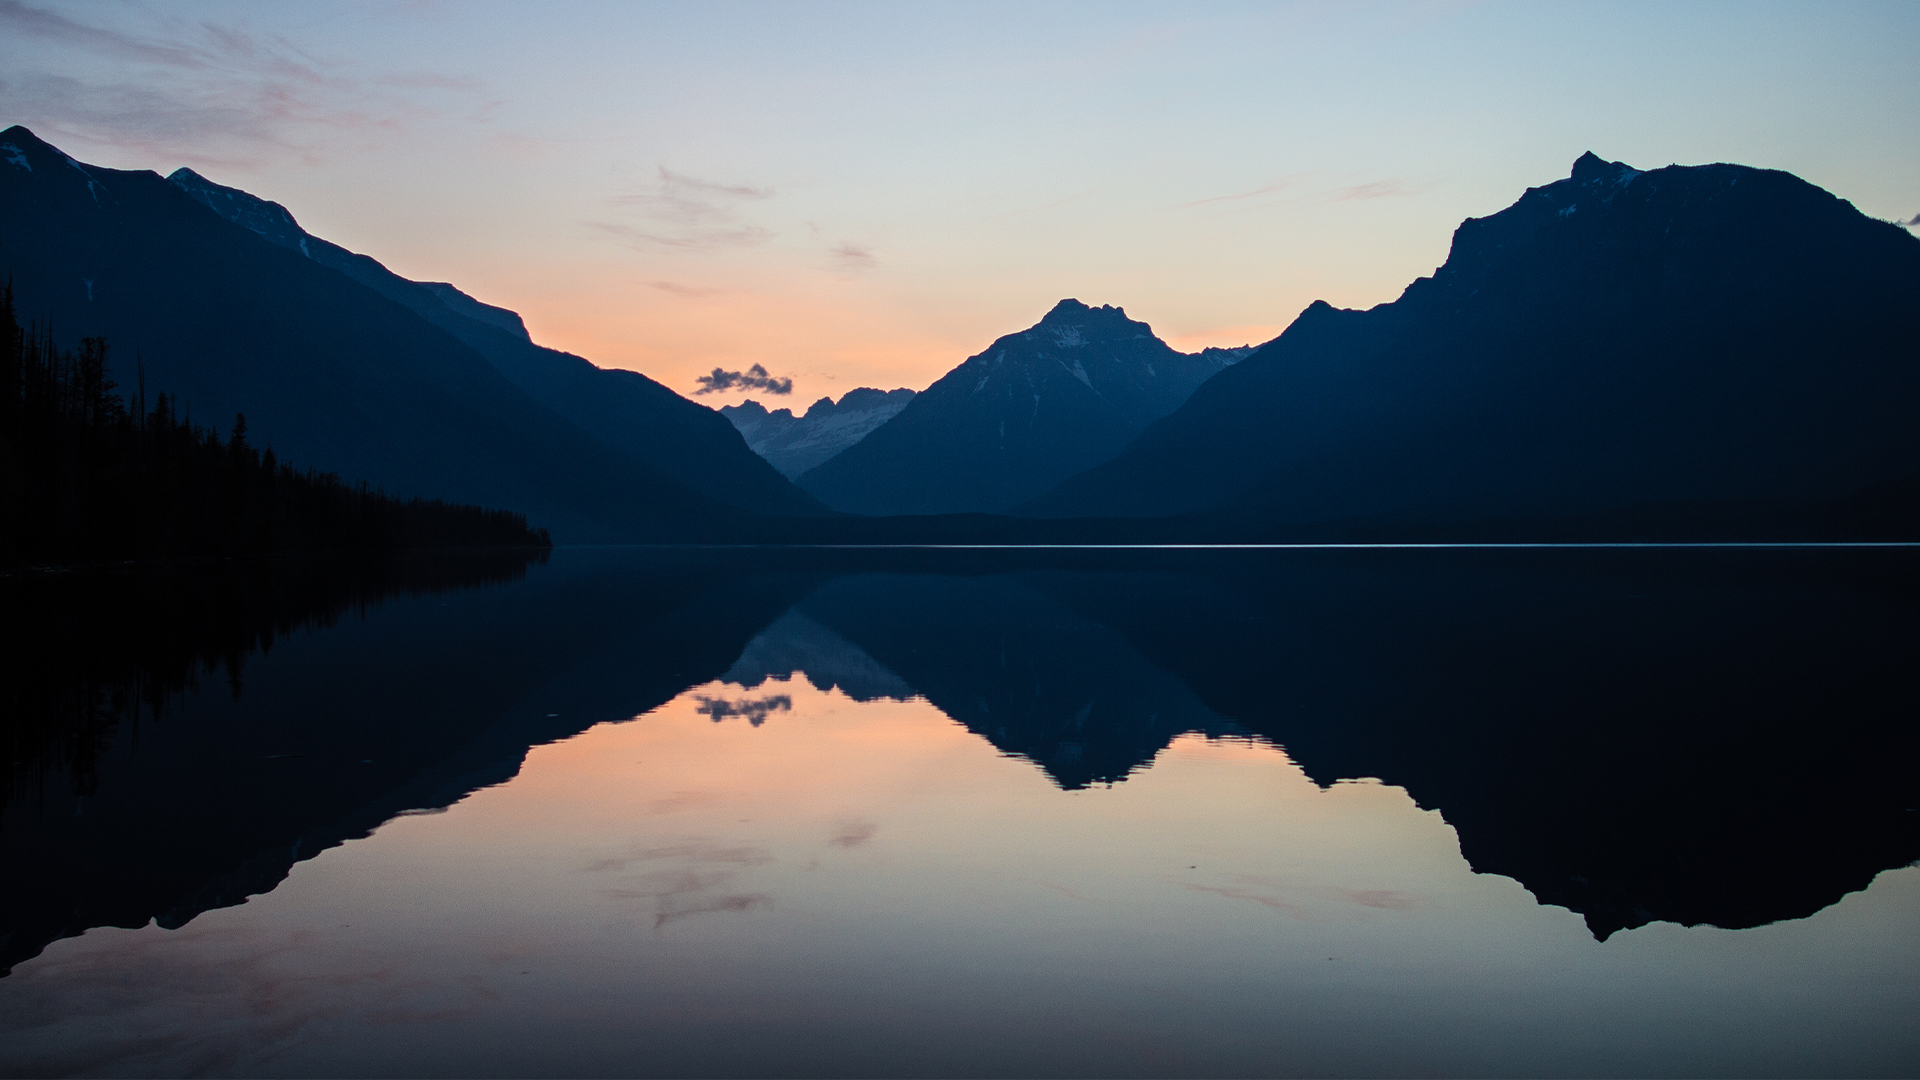 Sunrise on an alpine lake with silhouettes of mountains off in the distance